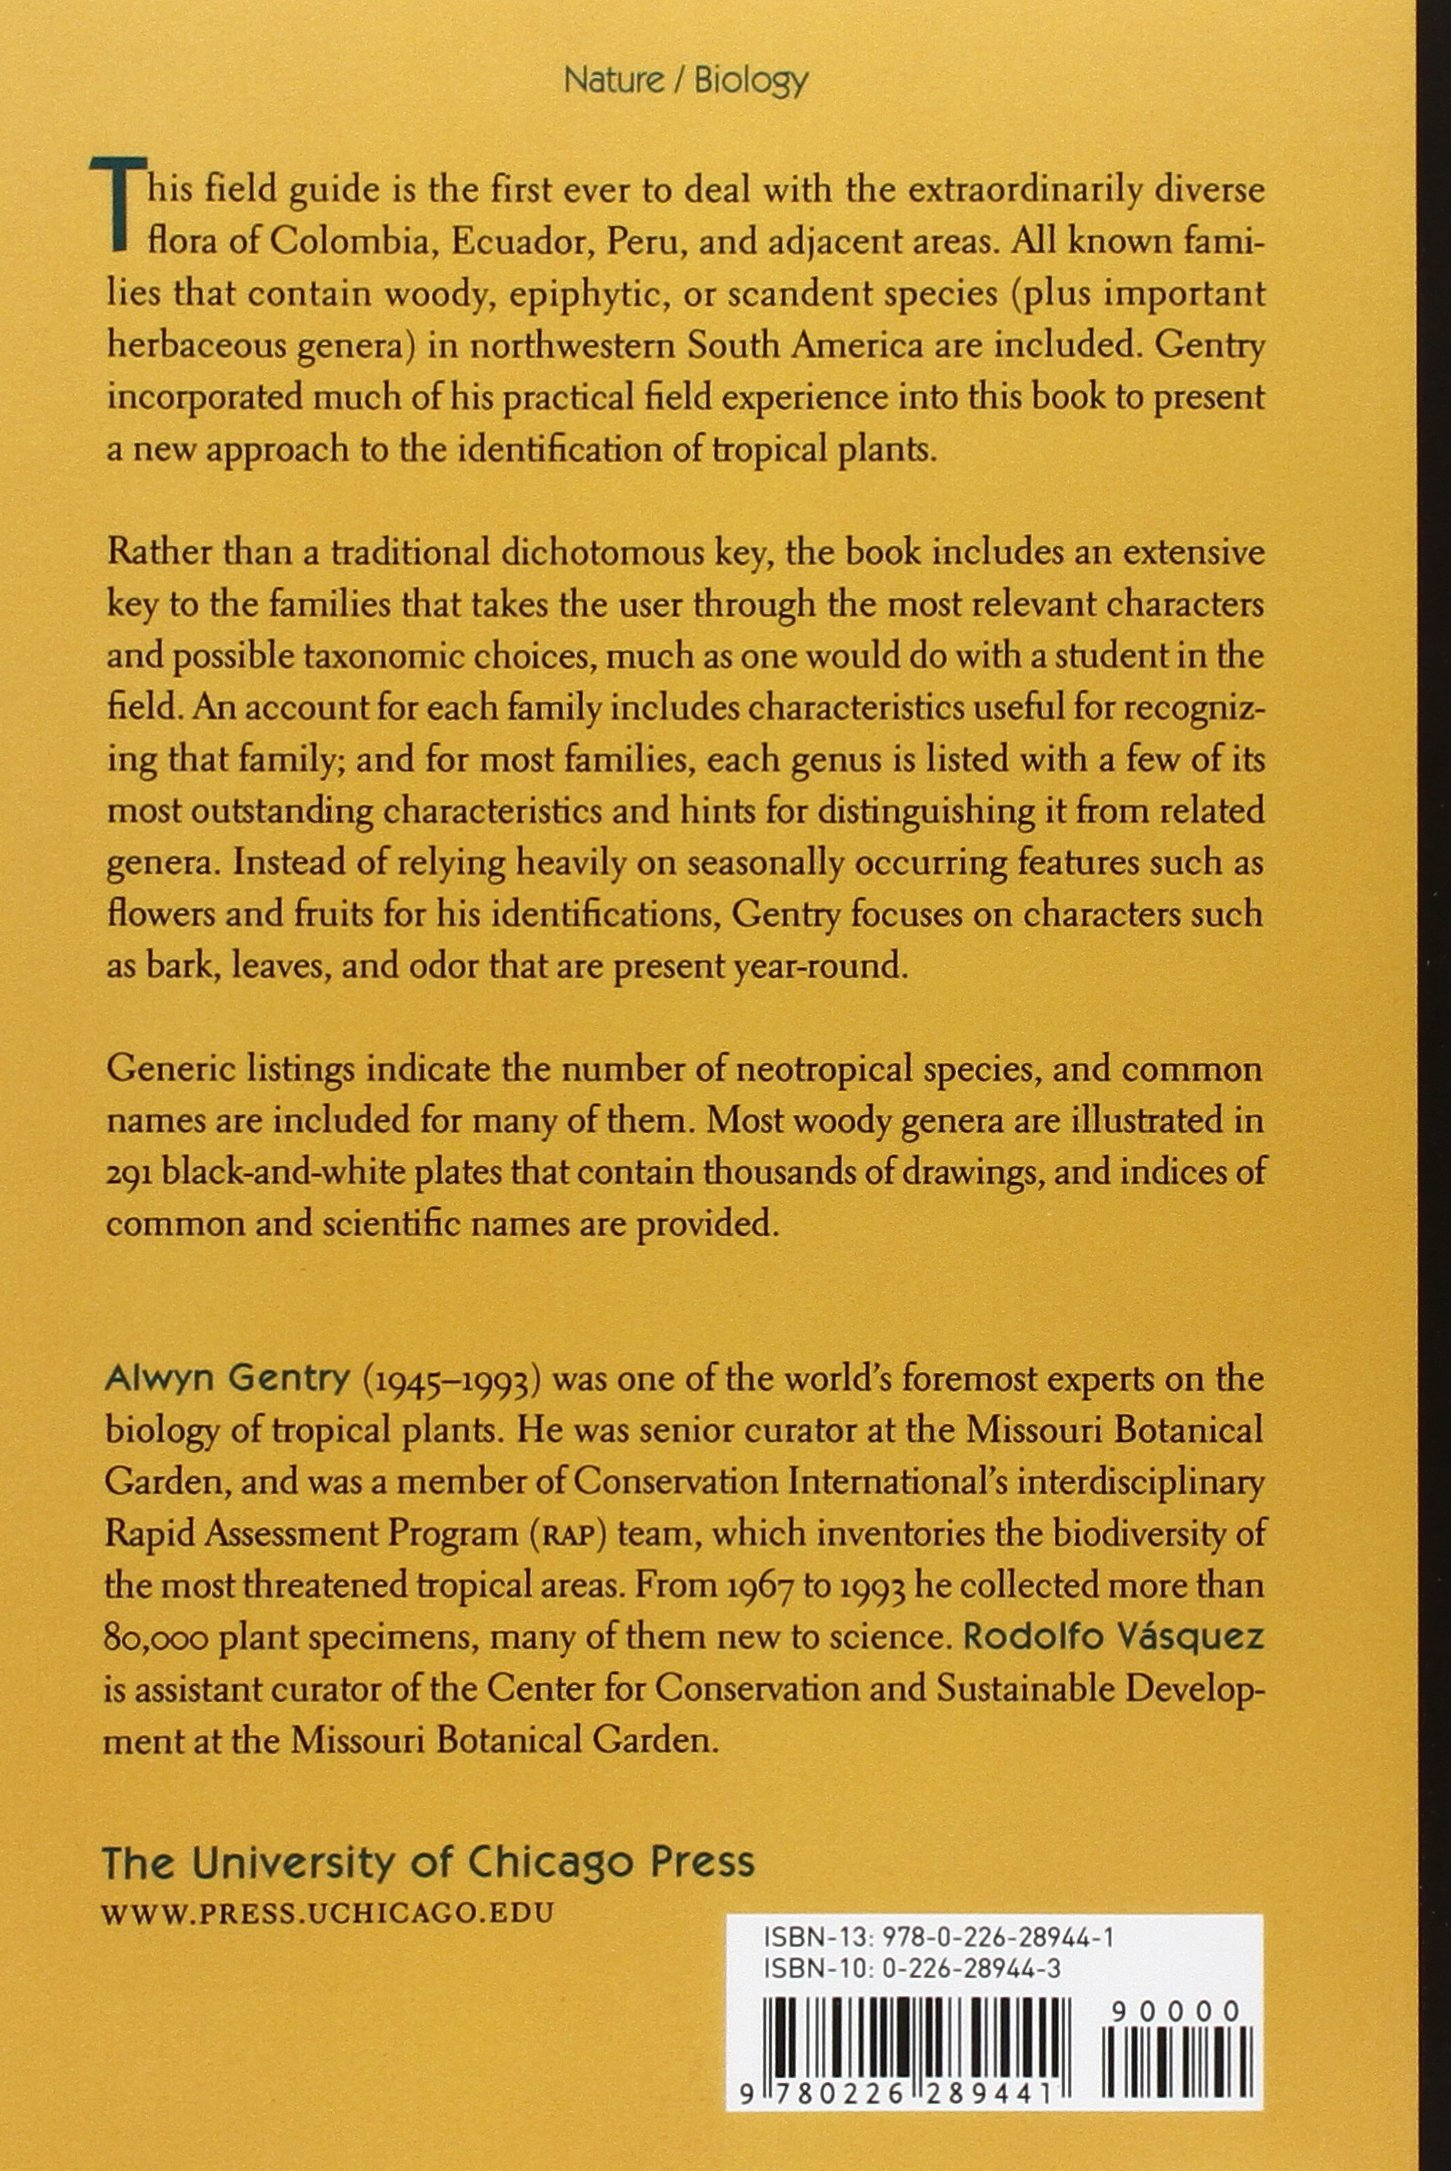 A Field Guide to the Families and Genera of Woody Plants of Northwest South America Columbia, Ecuador, Peru: Amazon.es: Alwyn H. Gentry, Rodolfo Vasquez: ...